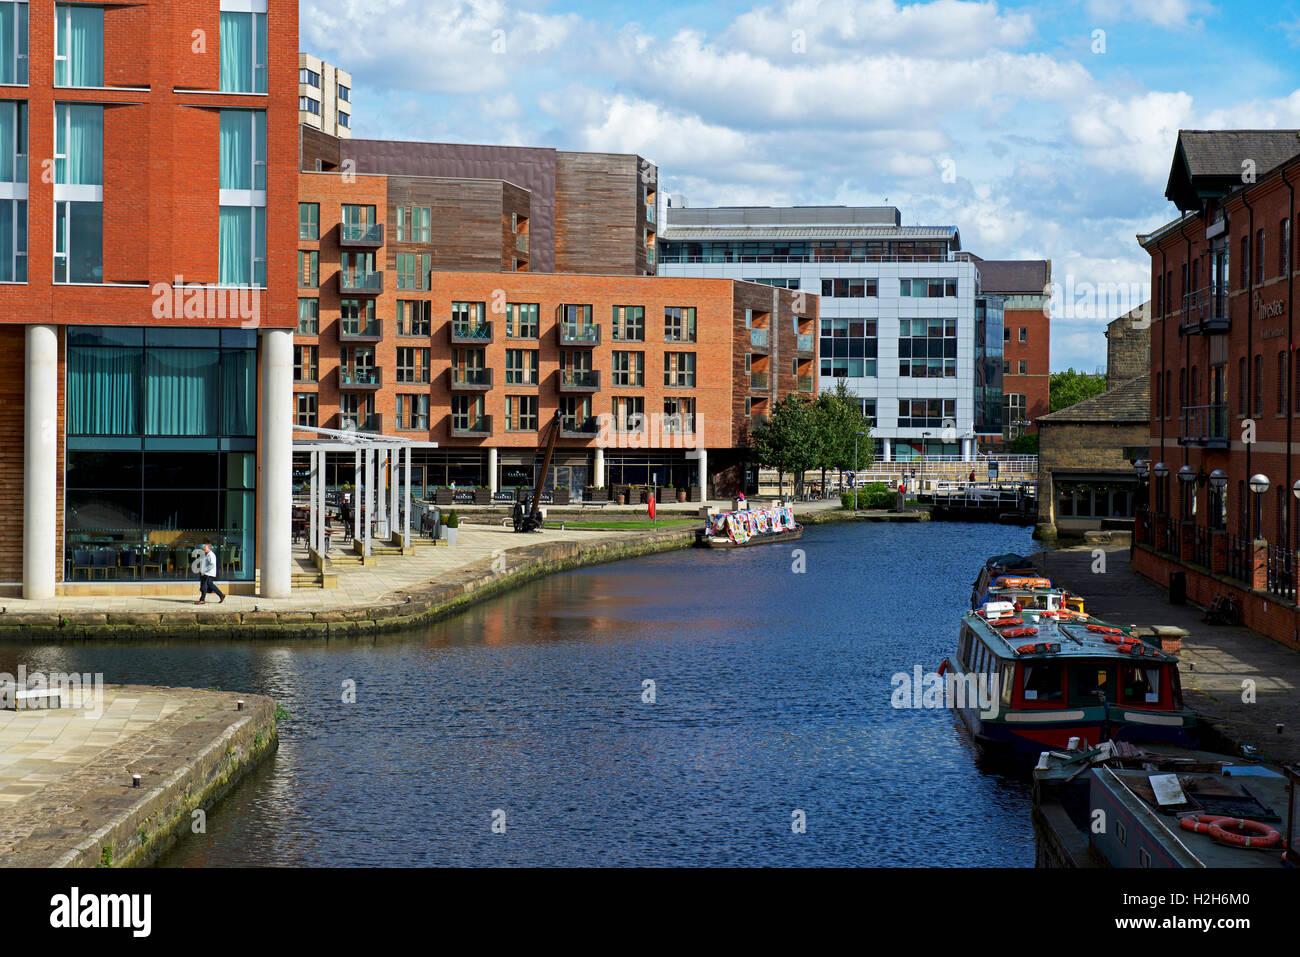 The canal basin of the Leeds & Liverpool Canal, Granary Wharf, Leeds, West Yorkshire, England UK - Stock Image